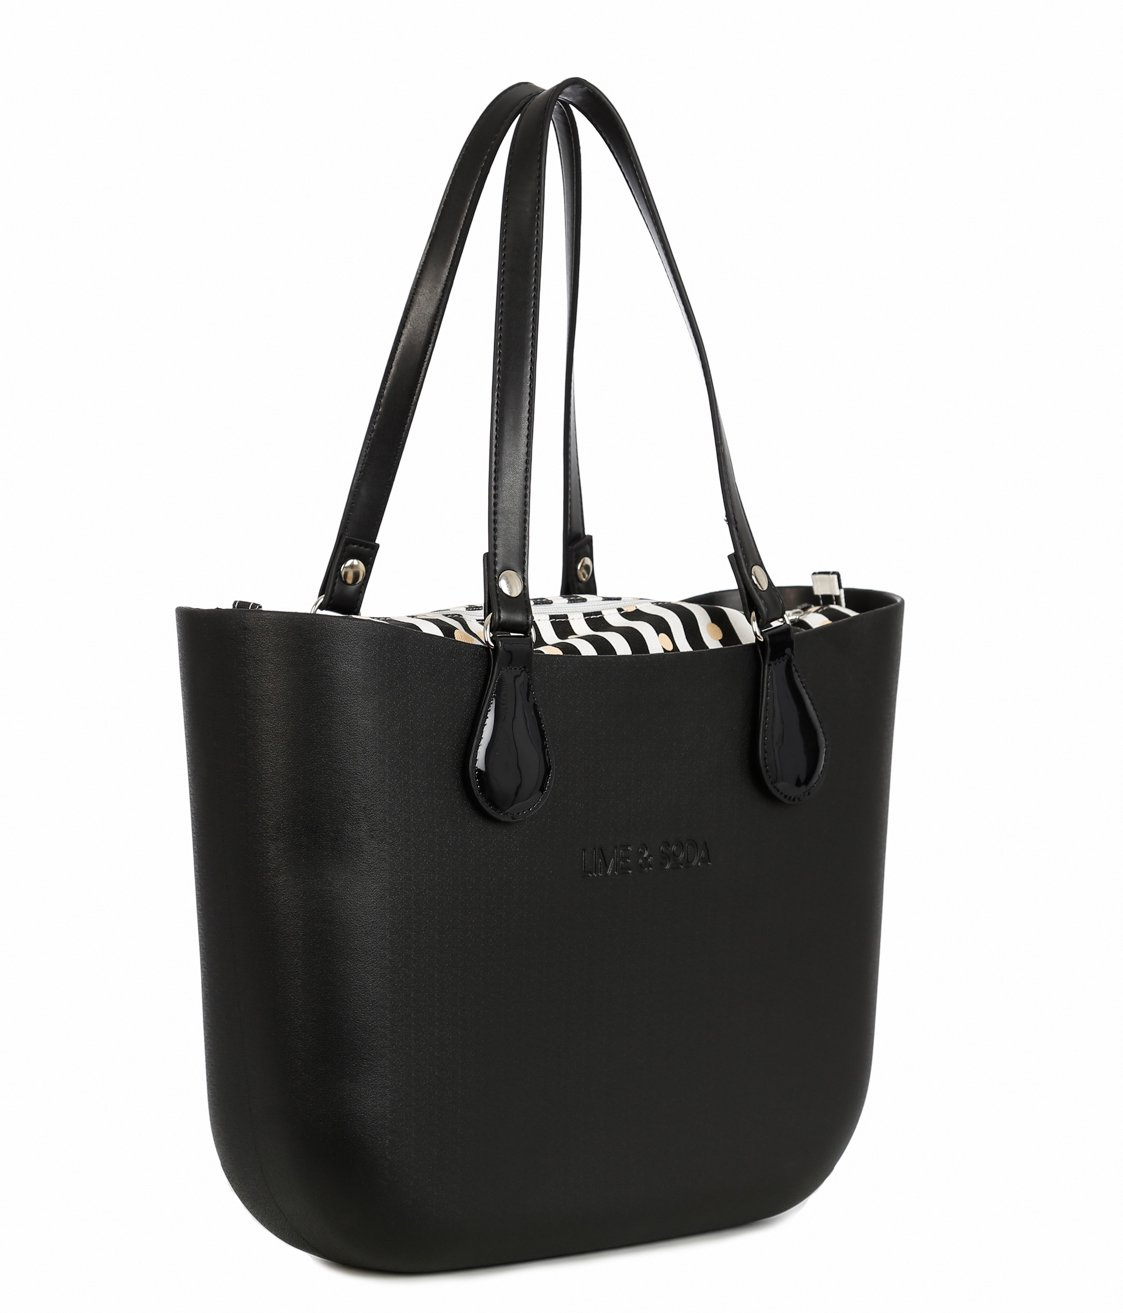 Lime & Soda Women's Fashion Eva Handbag - Simil Leather Handles - Mix & Match to find your style (Black Special 2)